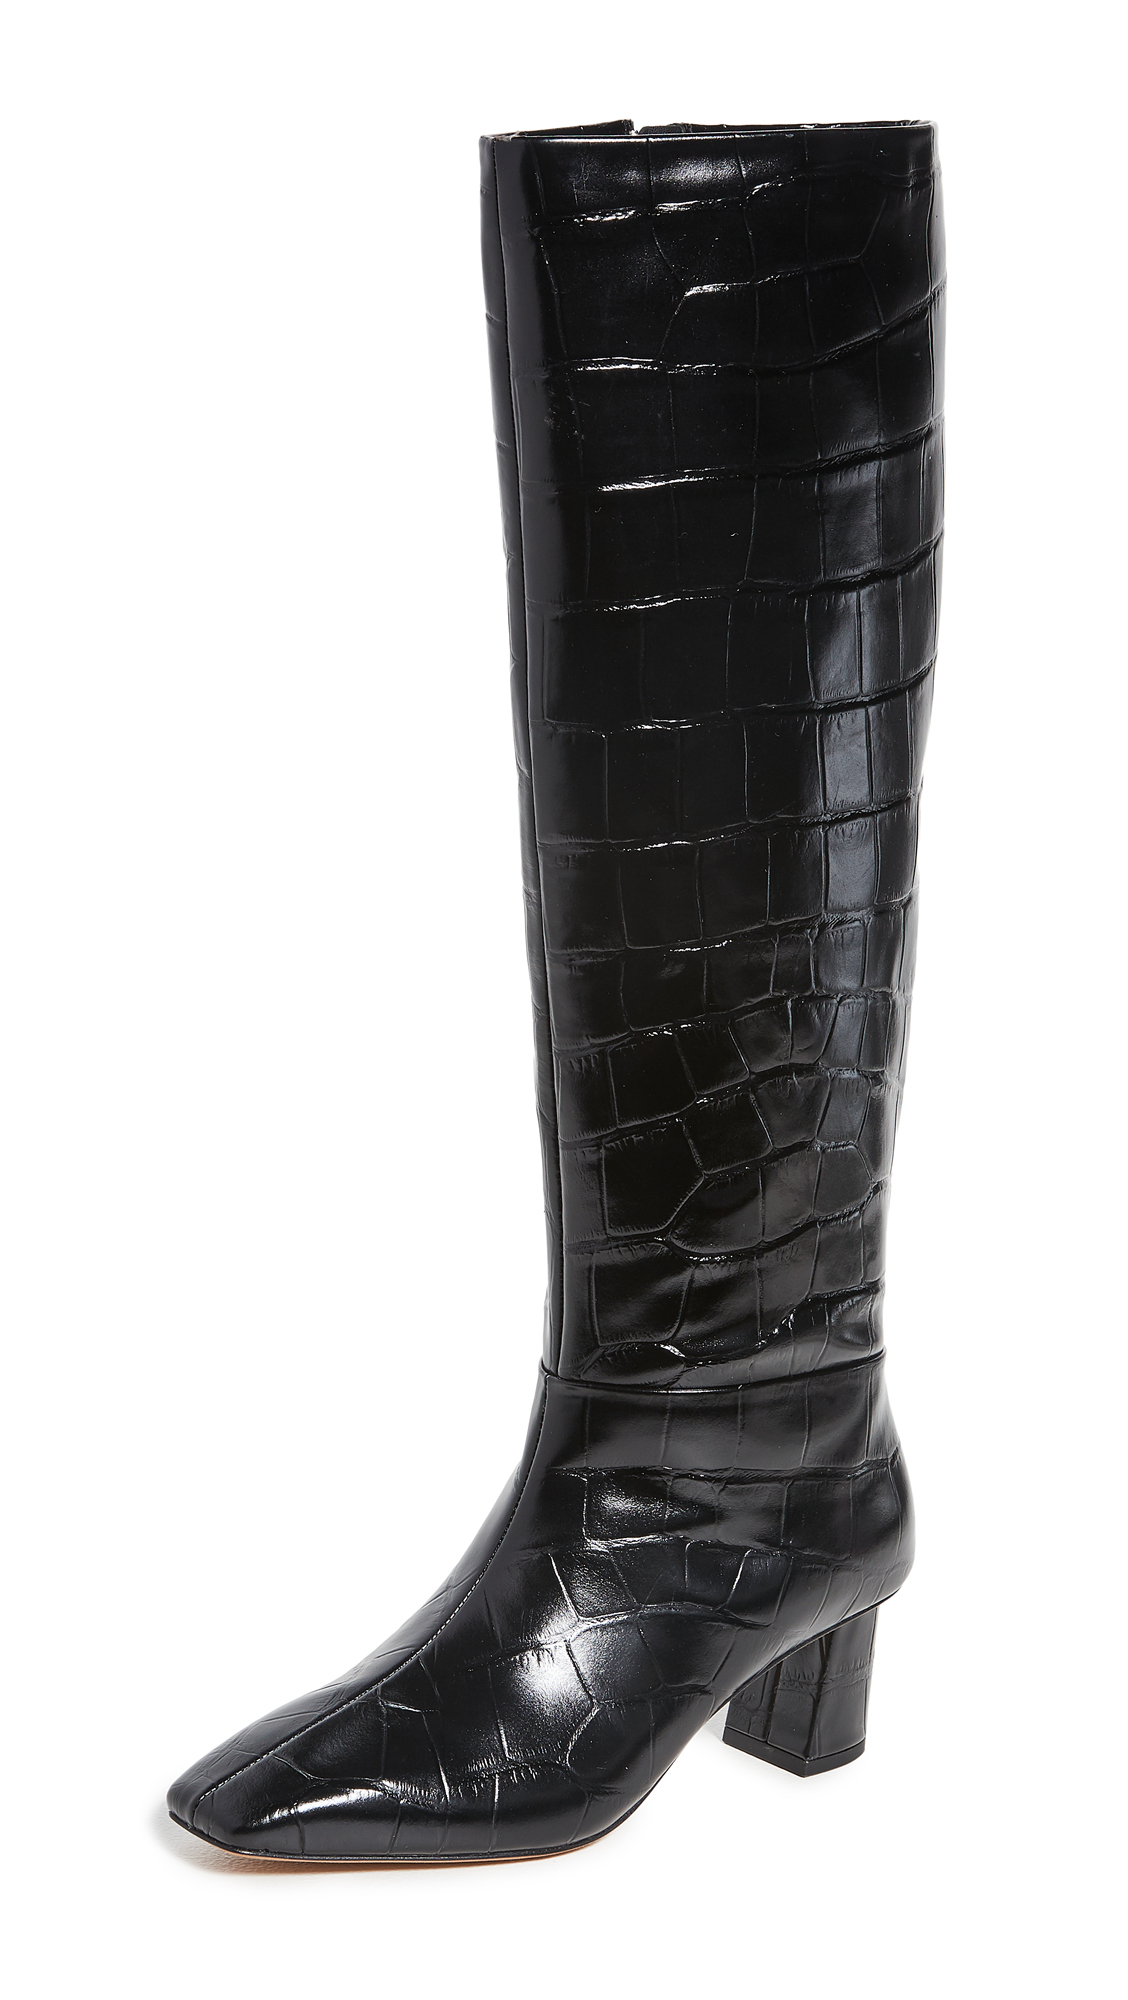 3.1 Phillip Lim Tess 60Mm Square Toe Boots